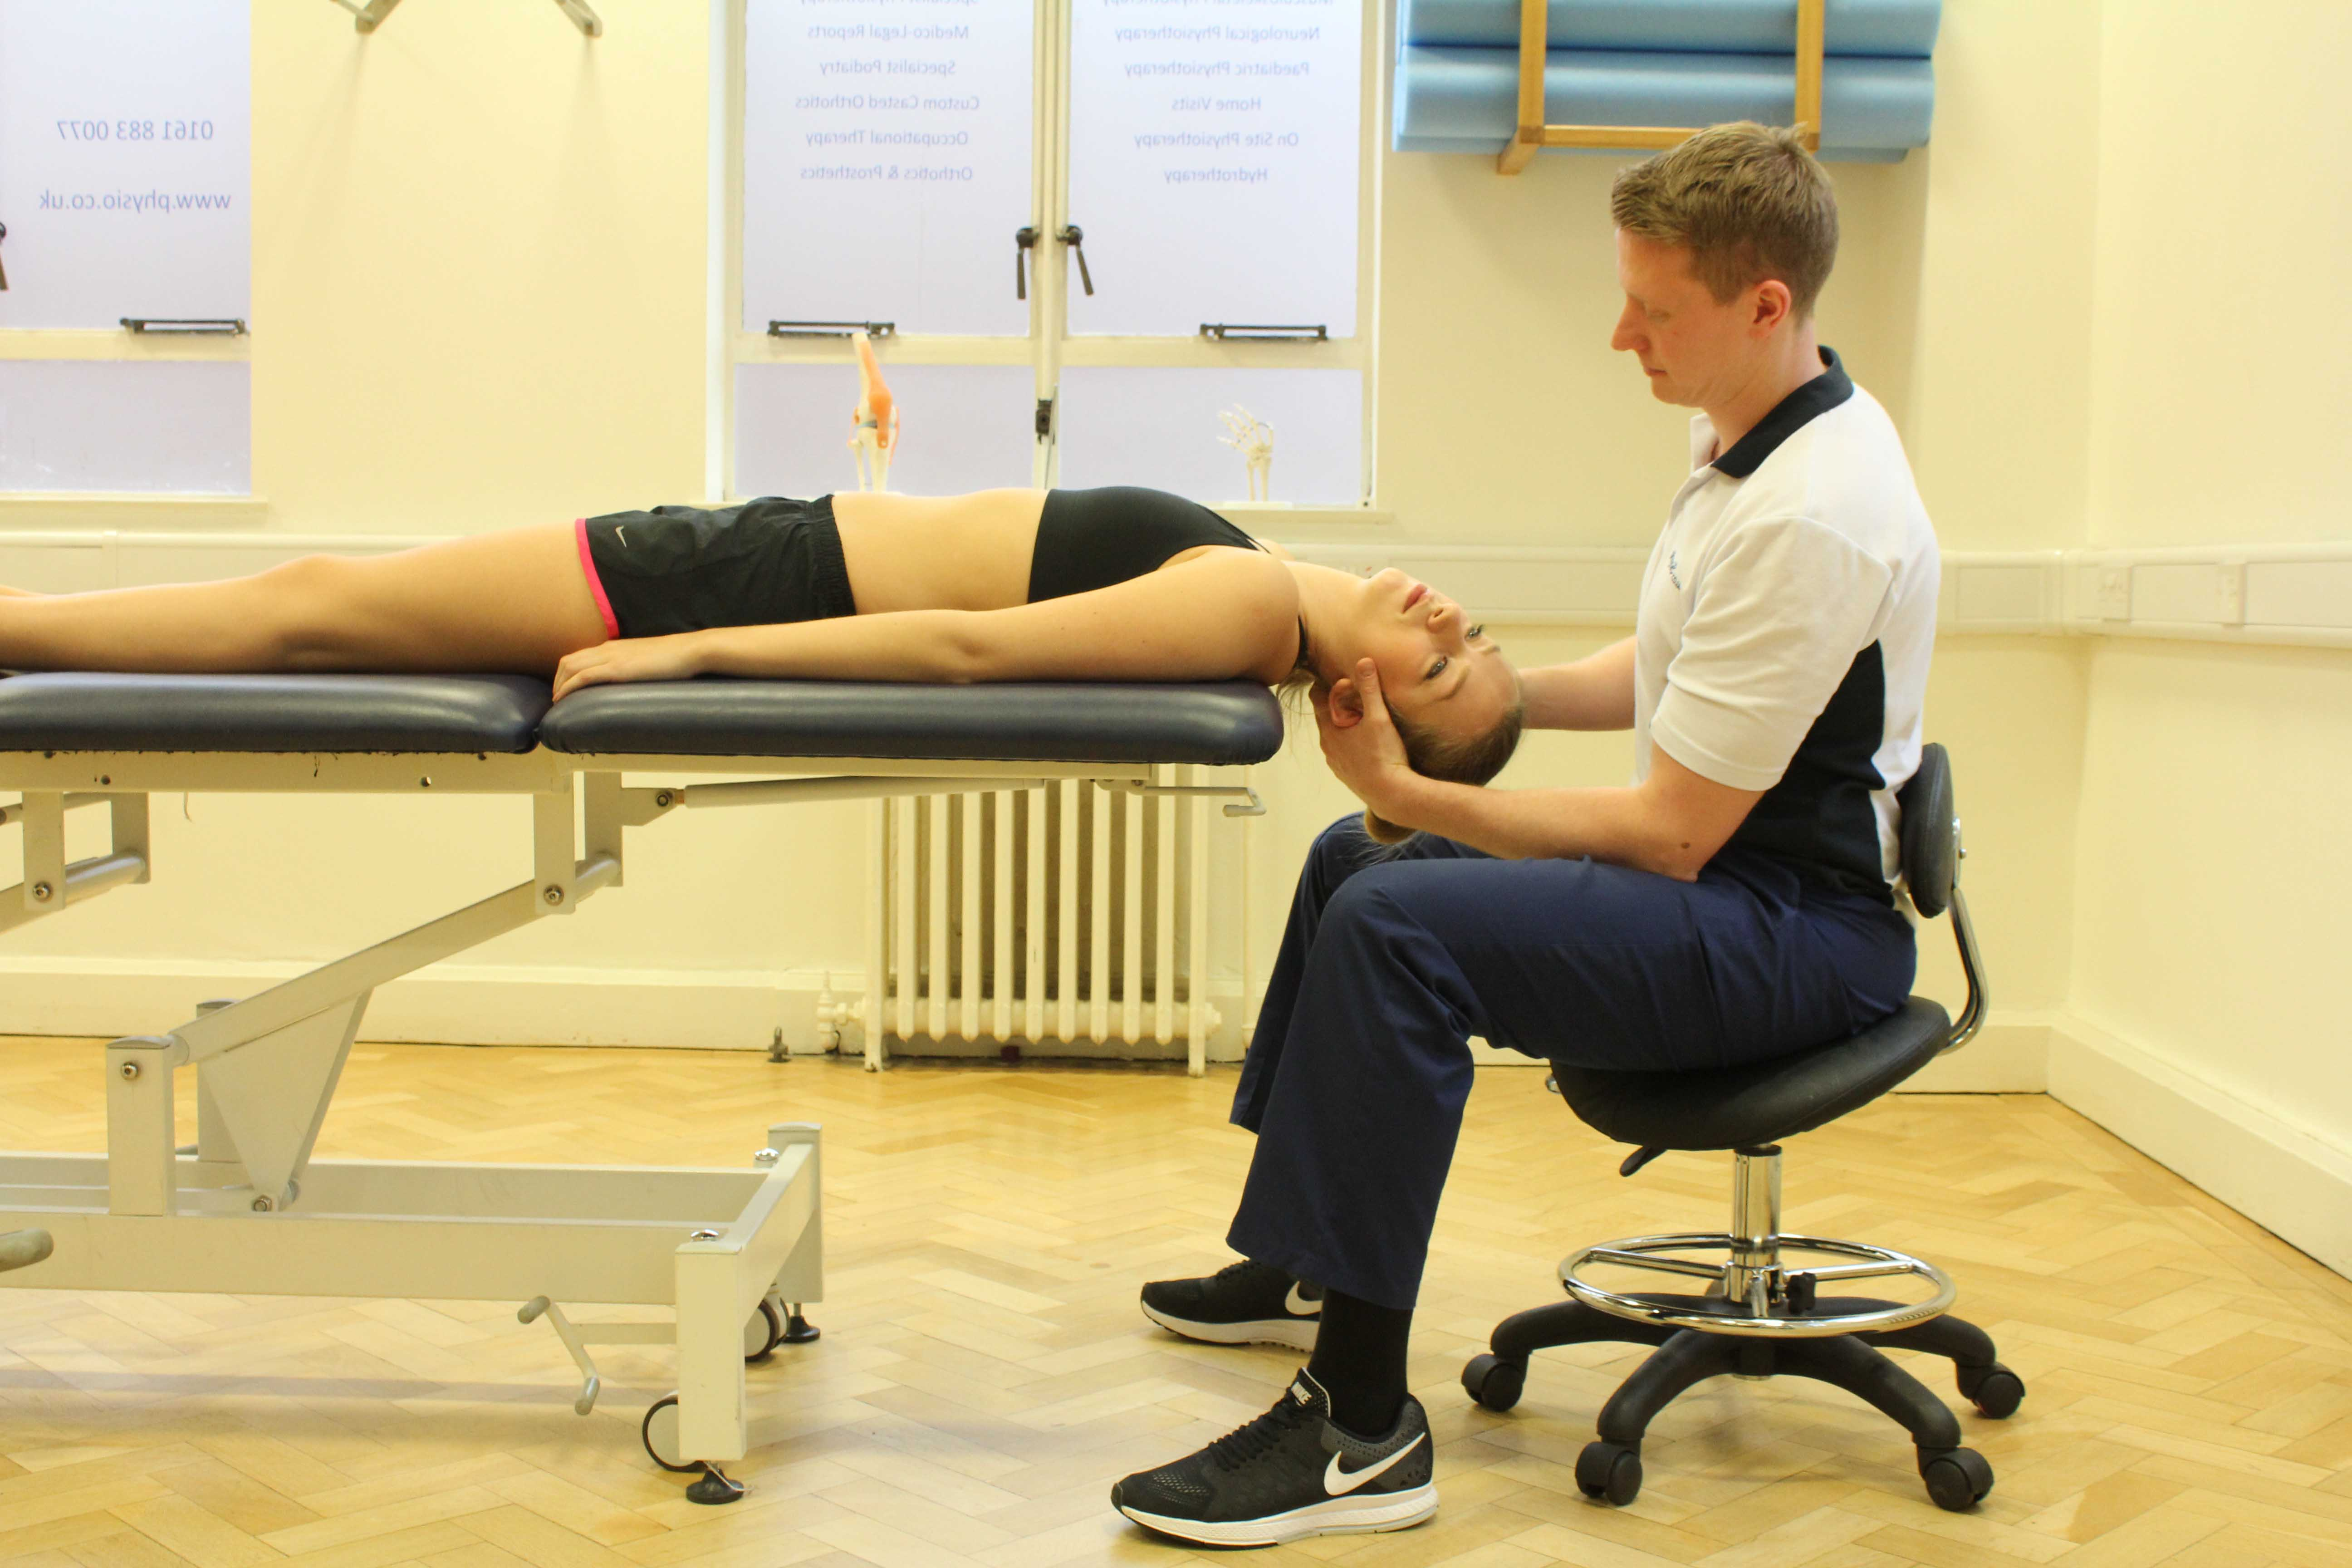 Vetsibular rehabilitation exercises carried out by a specialist physiotherapist